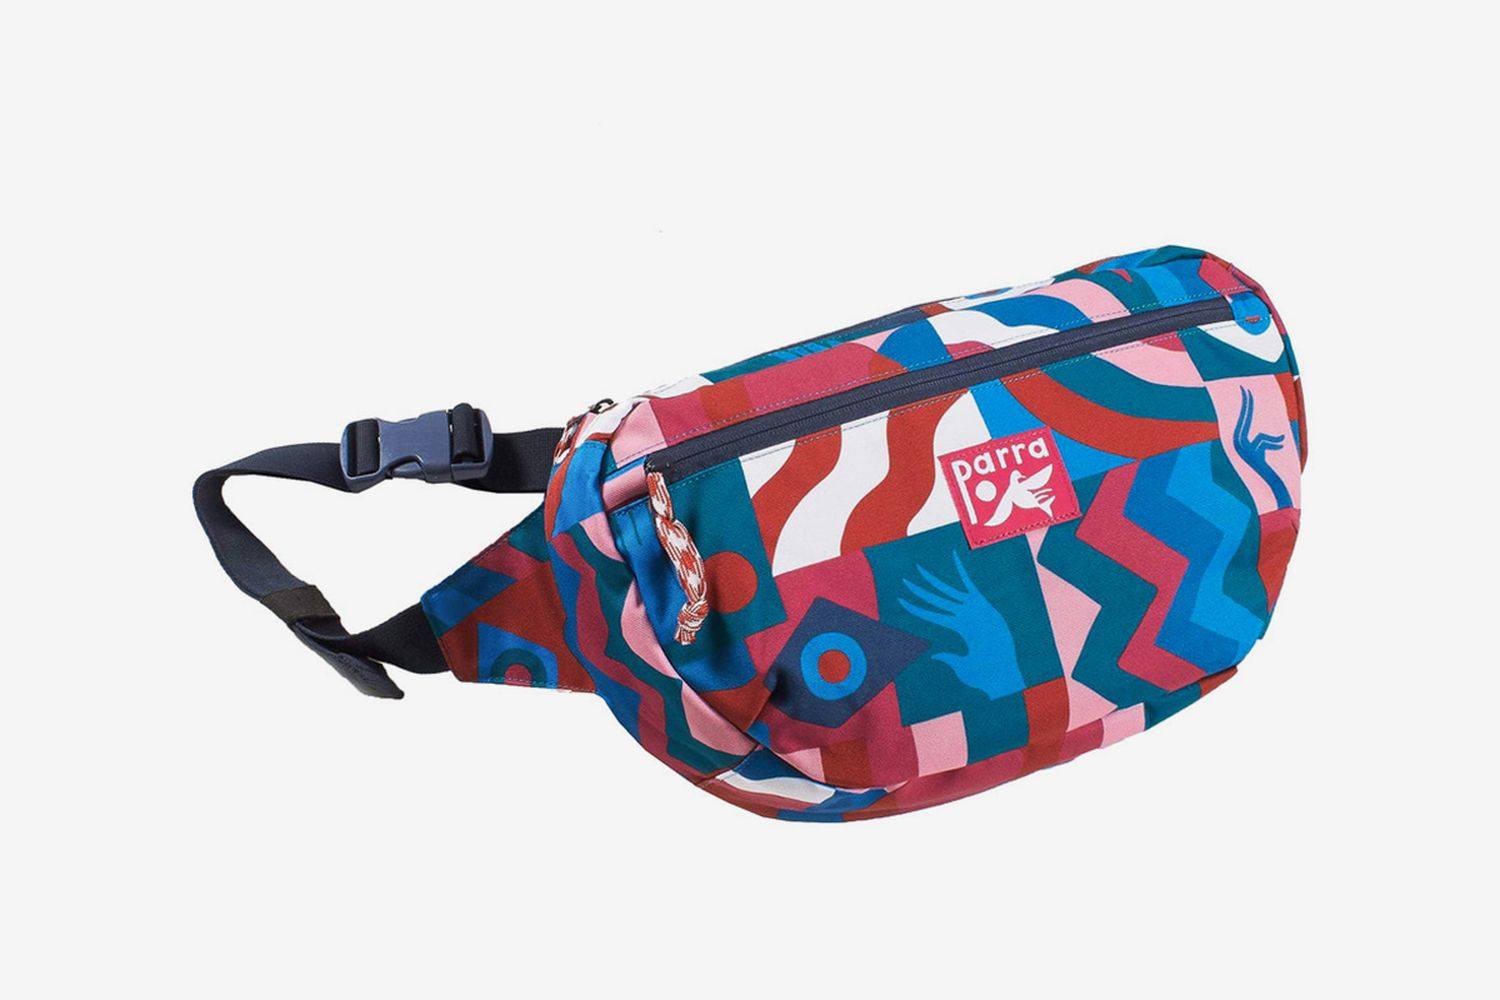 Grab The Flag Waist Bag